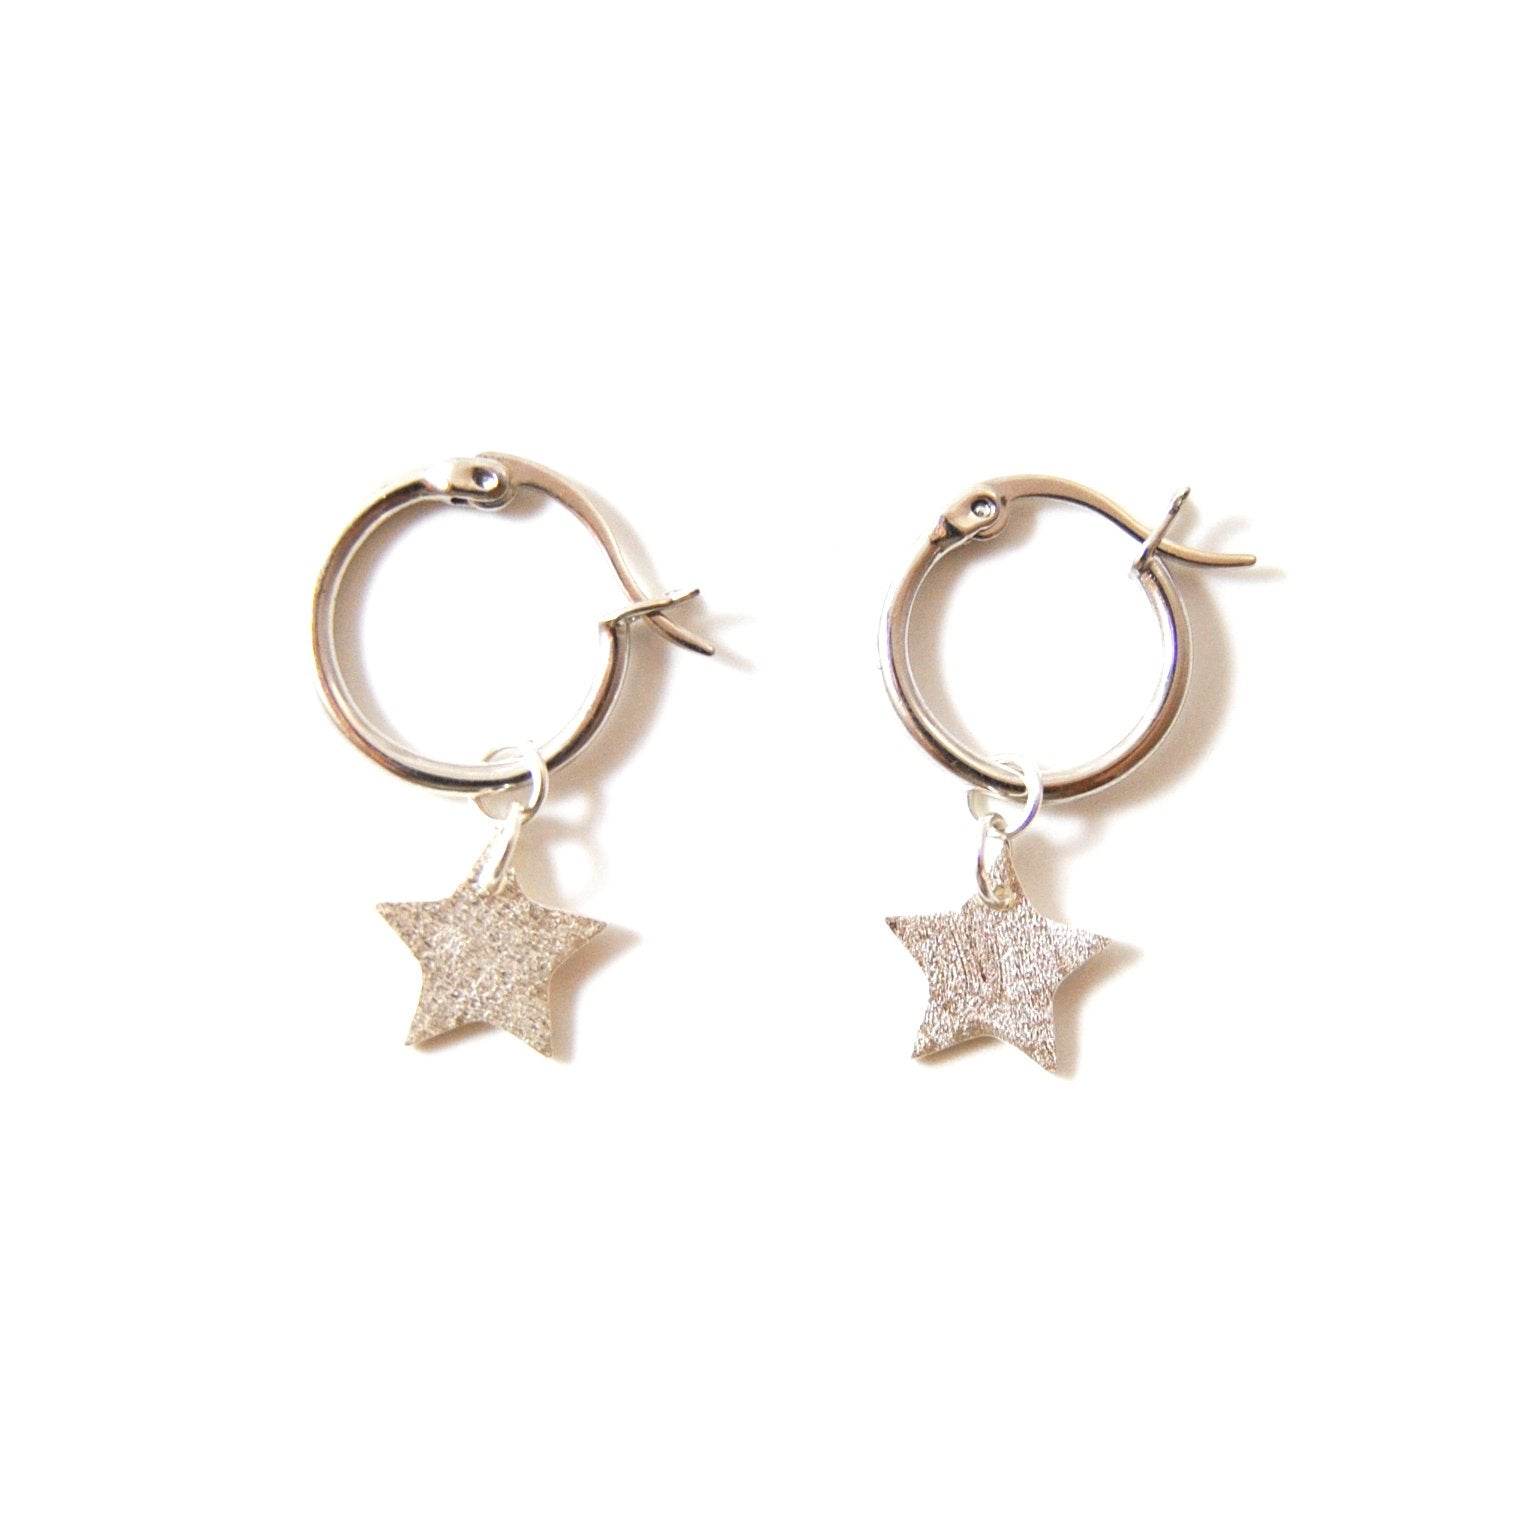 f.y.b Kaia Hoop Star Earrings